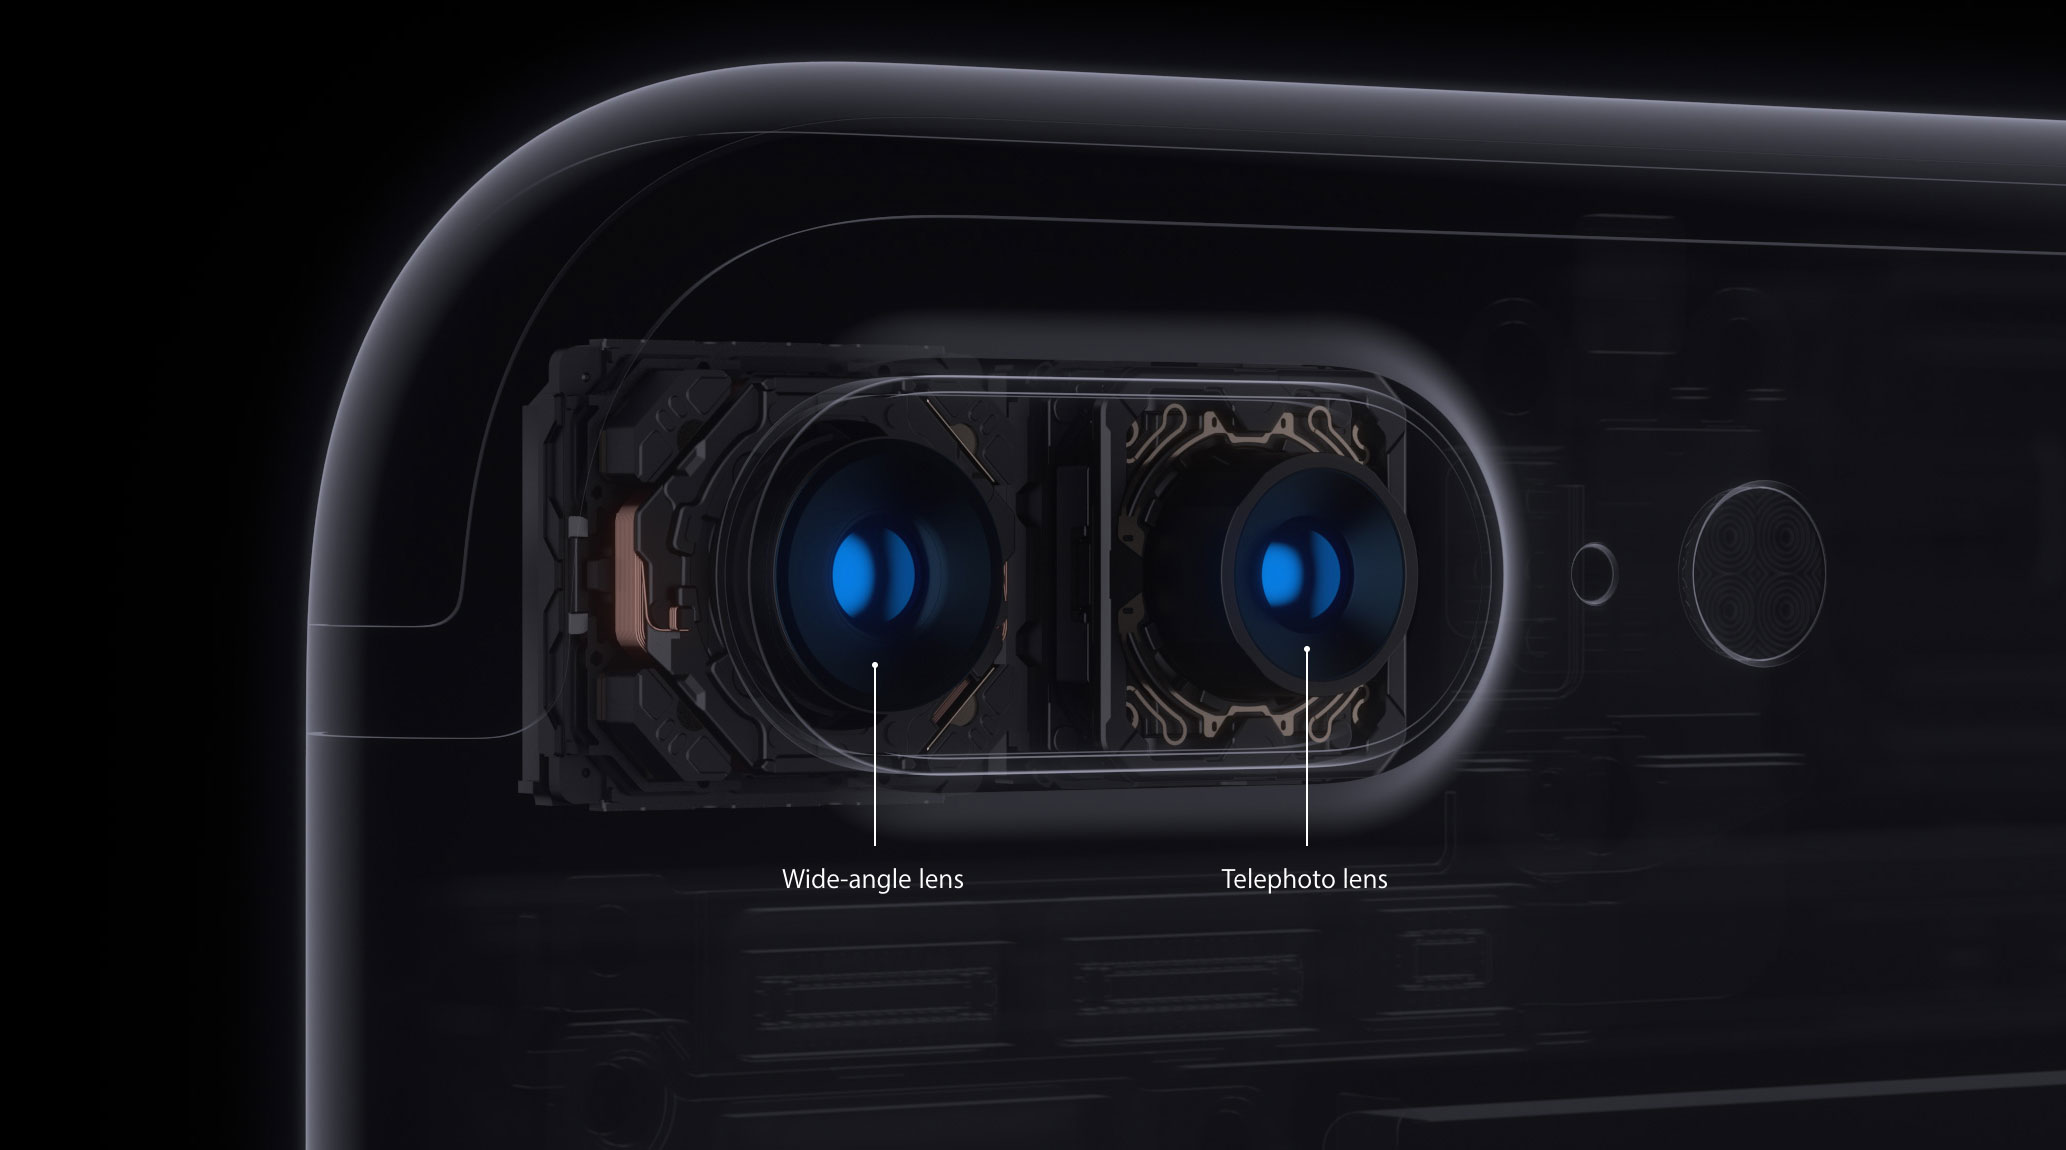 The iPhone 7 Plus has a wide-angle 28mm-equivalent lens and 56mm-equivalent telephoto lens that work together.